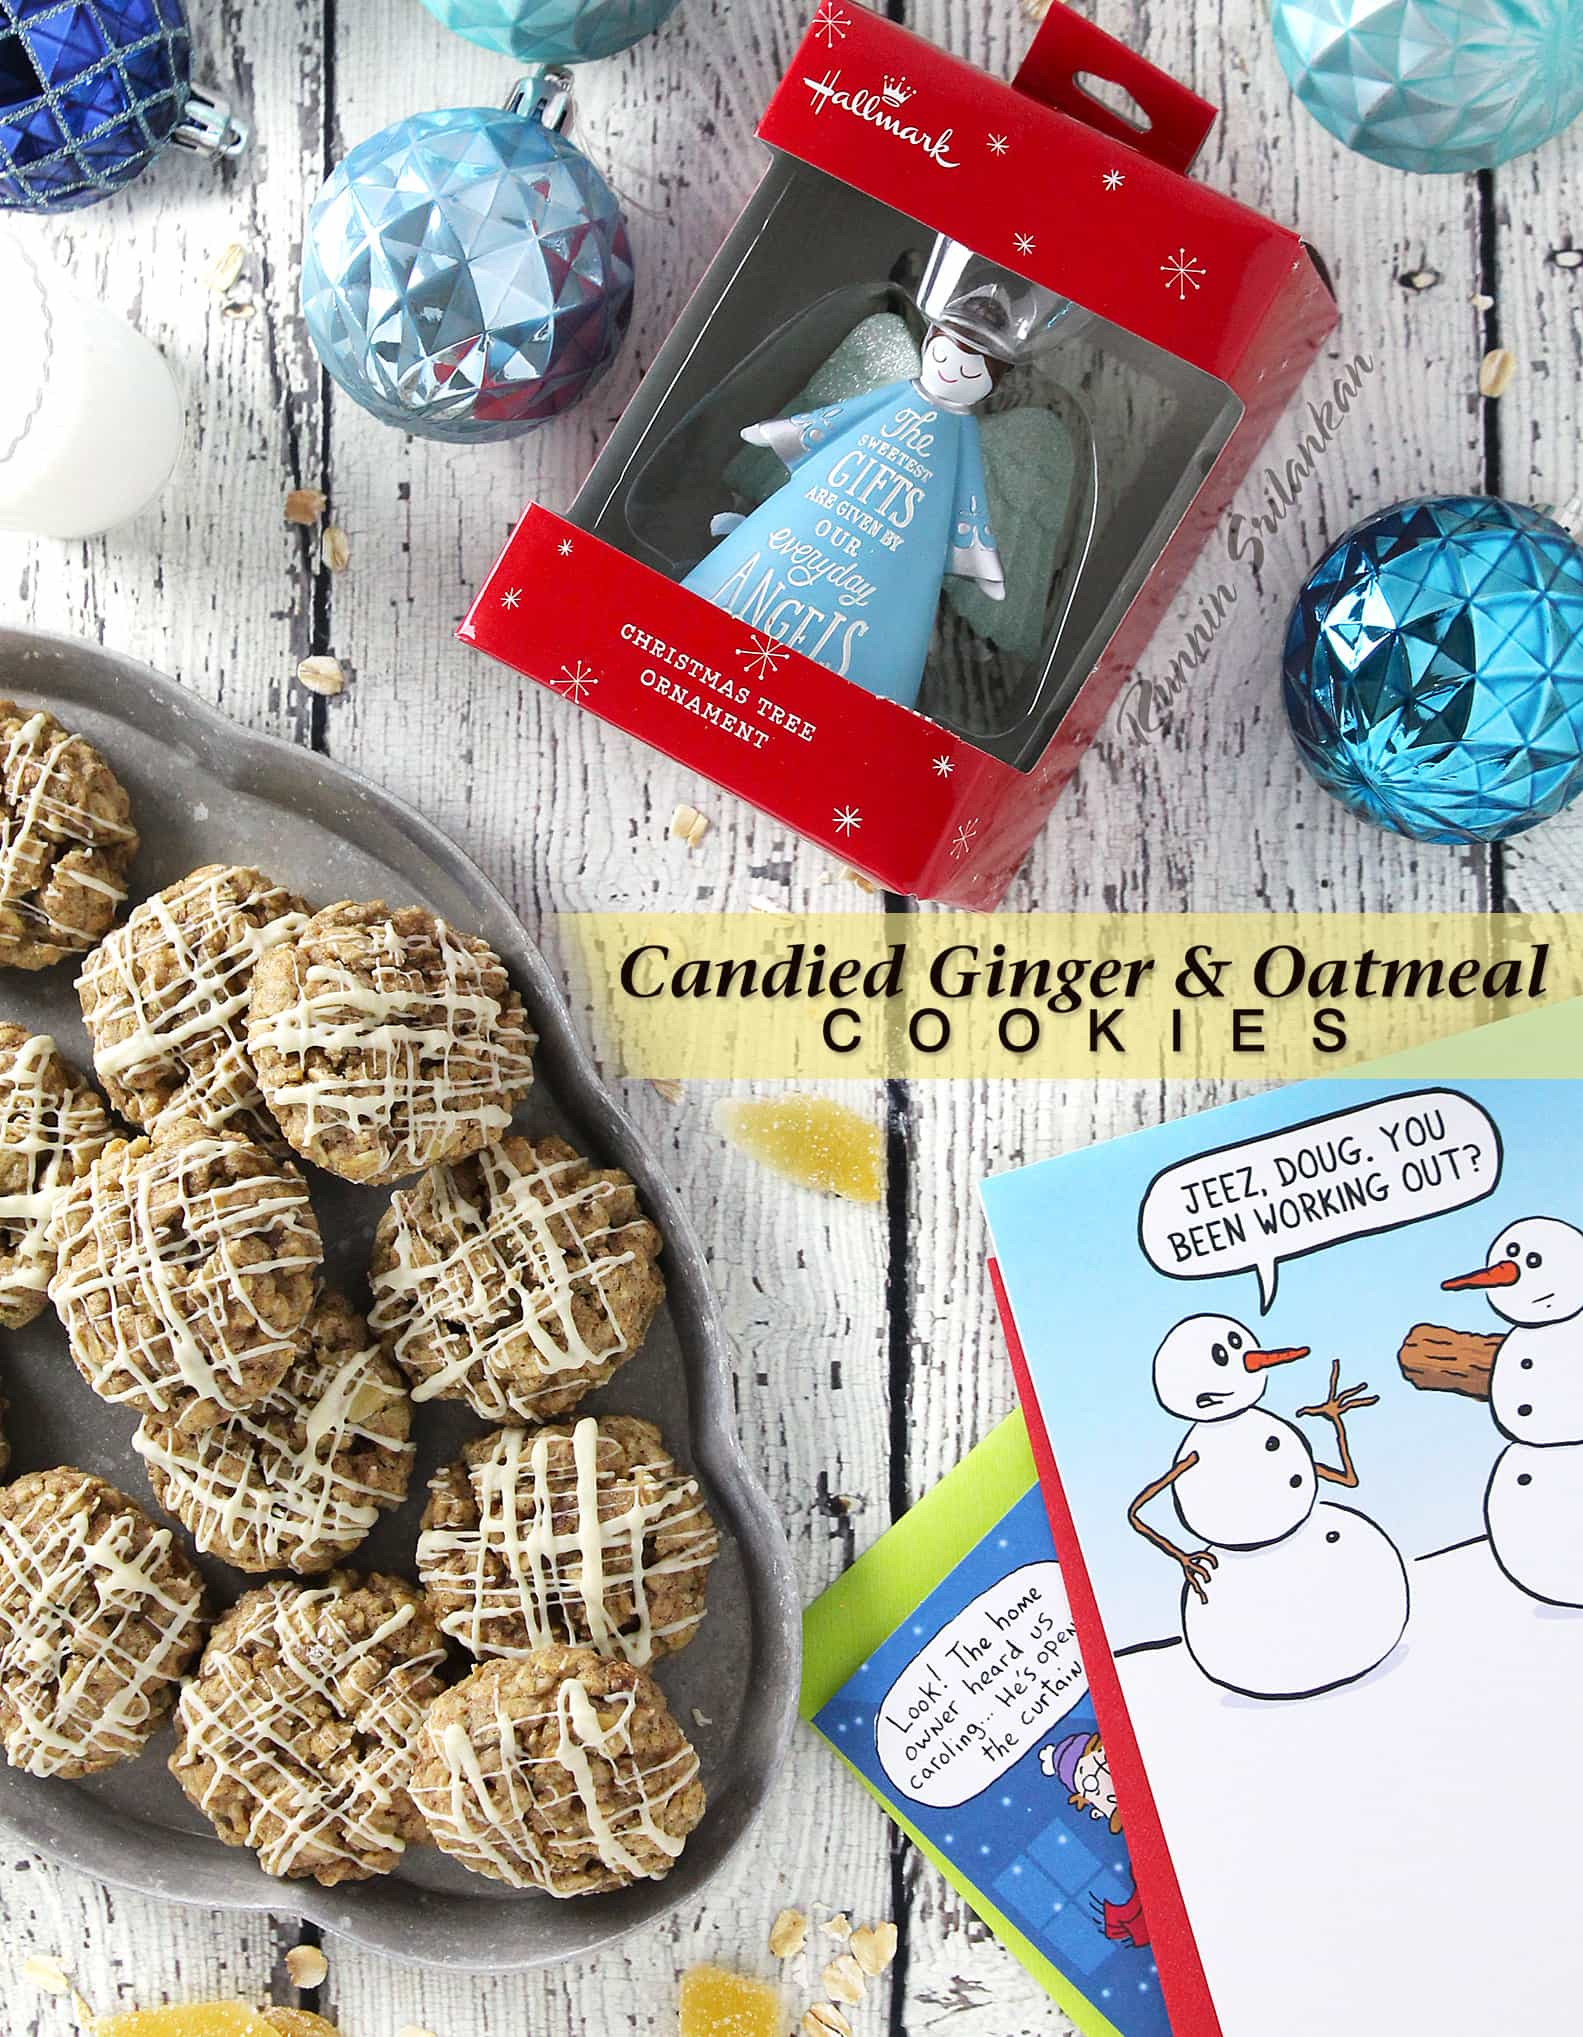 Gluten Free Candied Ginger Oatmeal Cookies for Your Holiday Cookie Platter